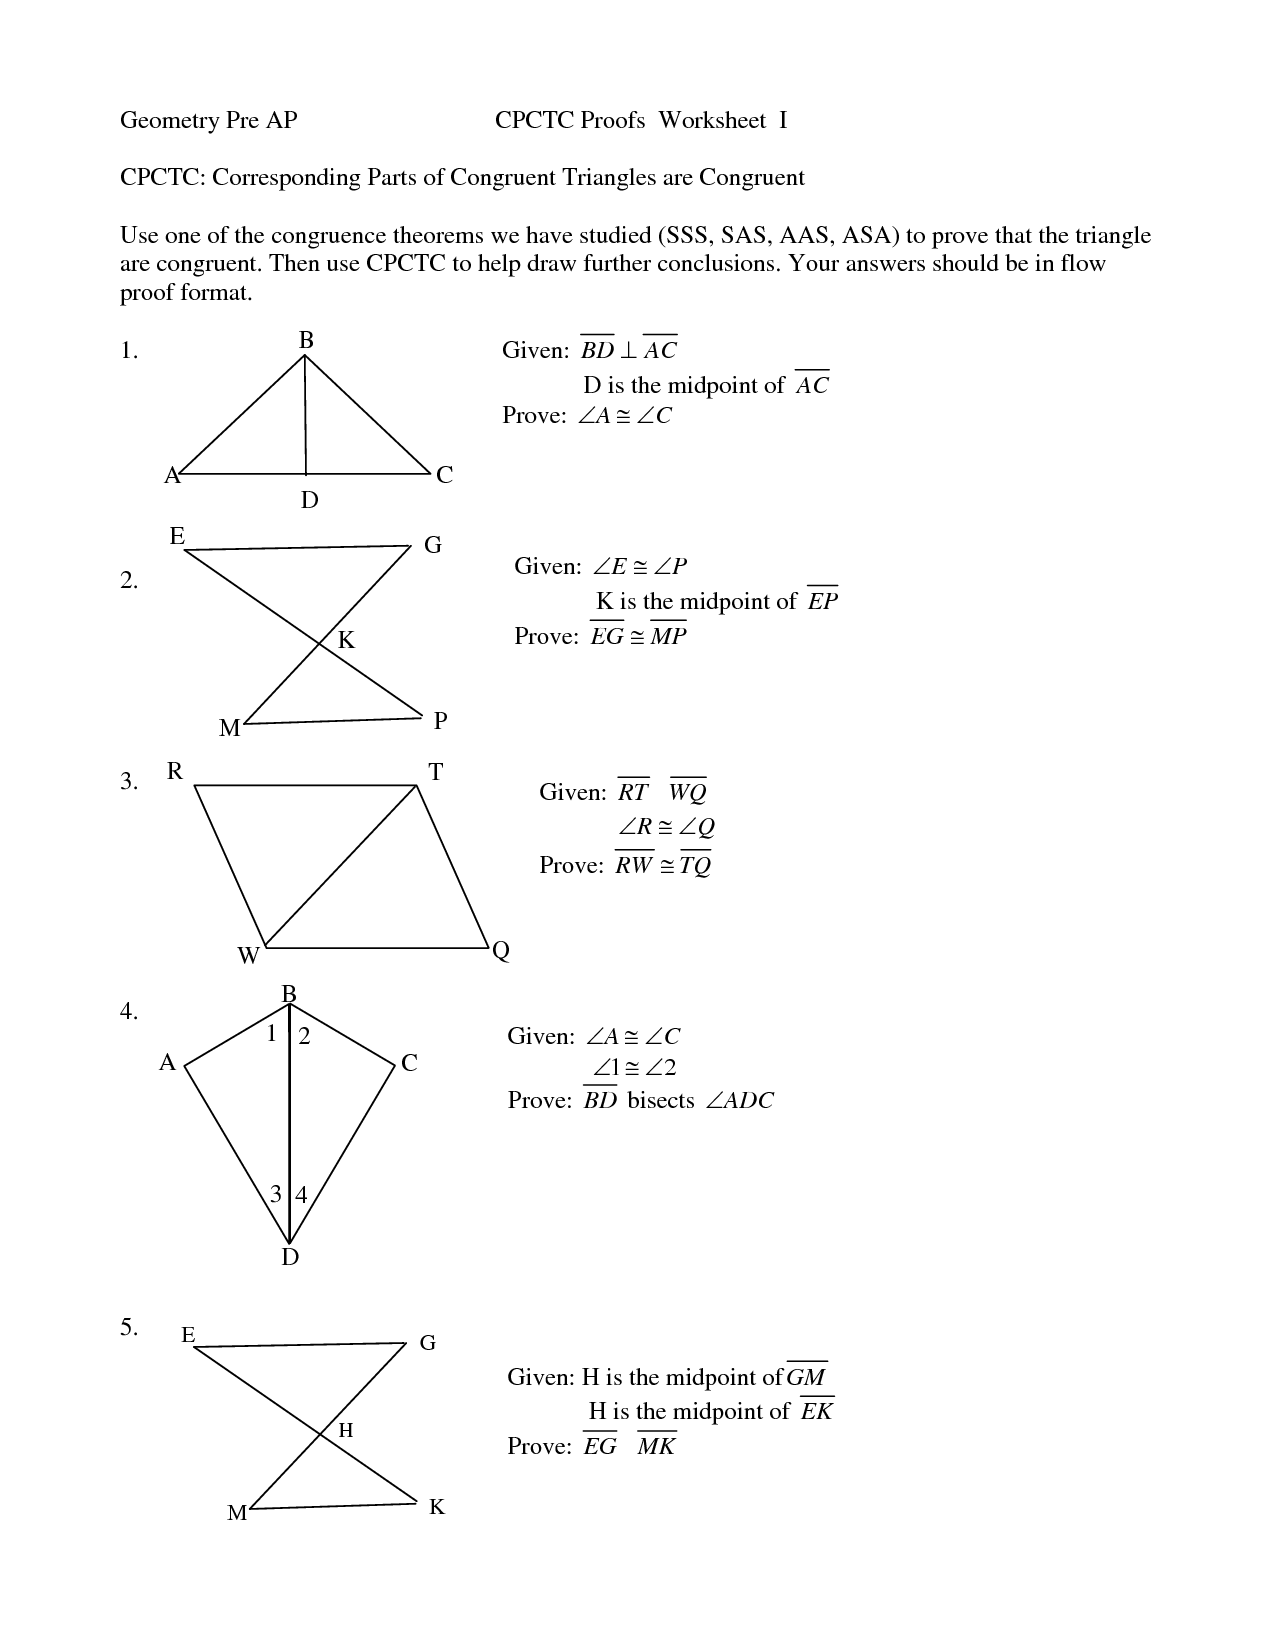 Proving Triangles Congruent Worksheet Answer Key  previous geometry dolfanescobar s